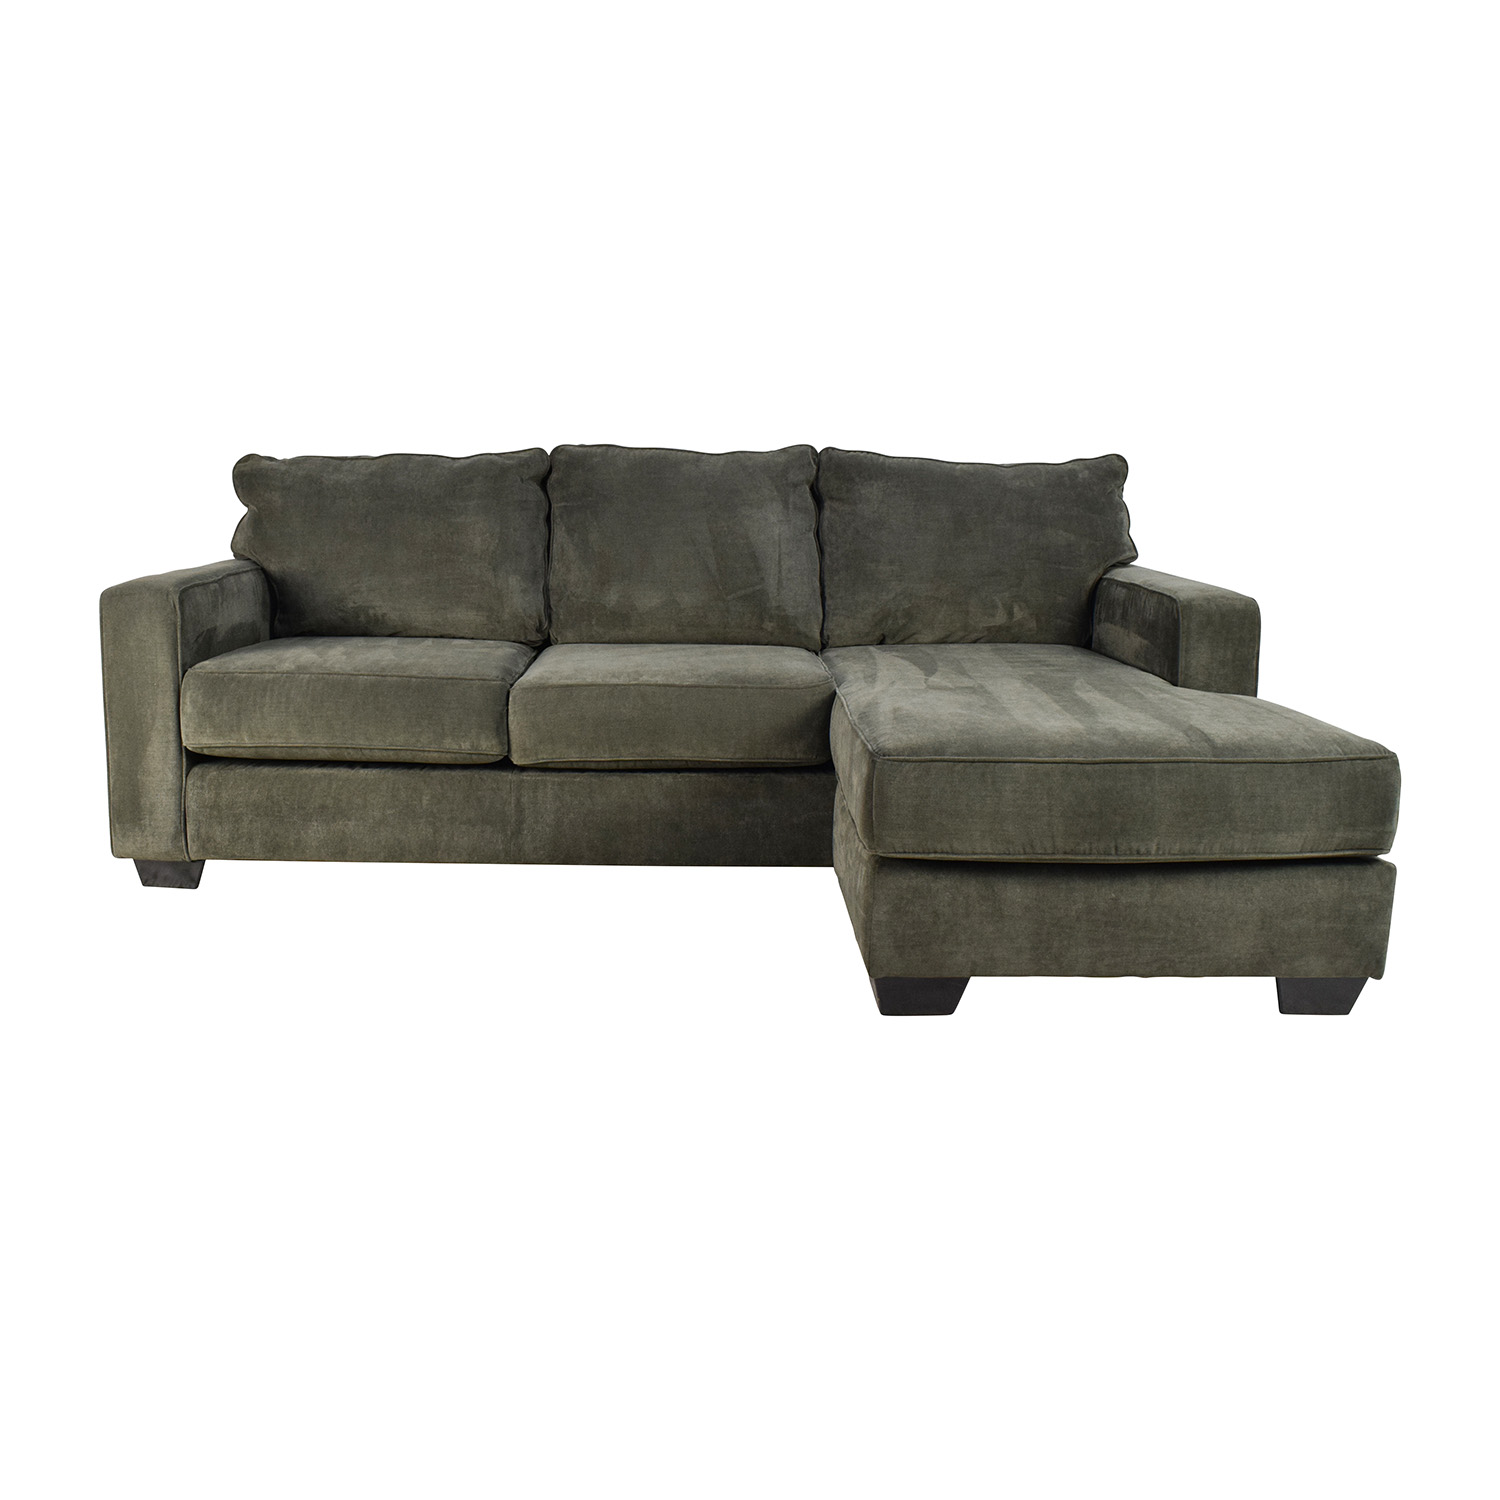 Jennifer Convertibles Sofa Convertible Beds